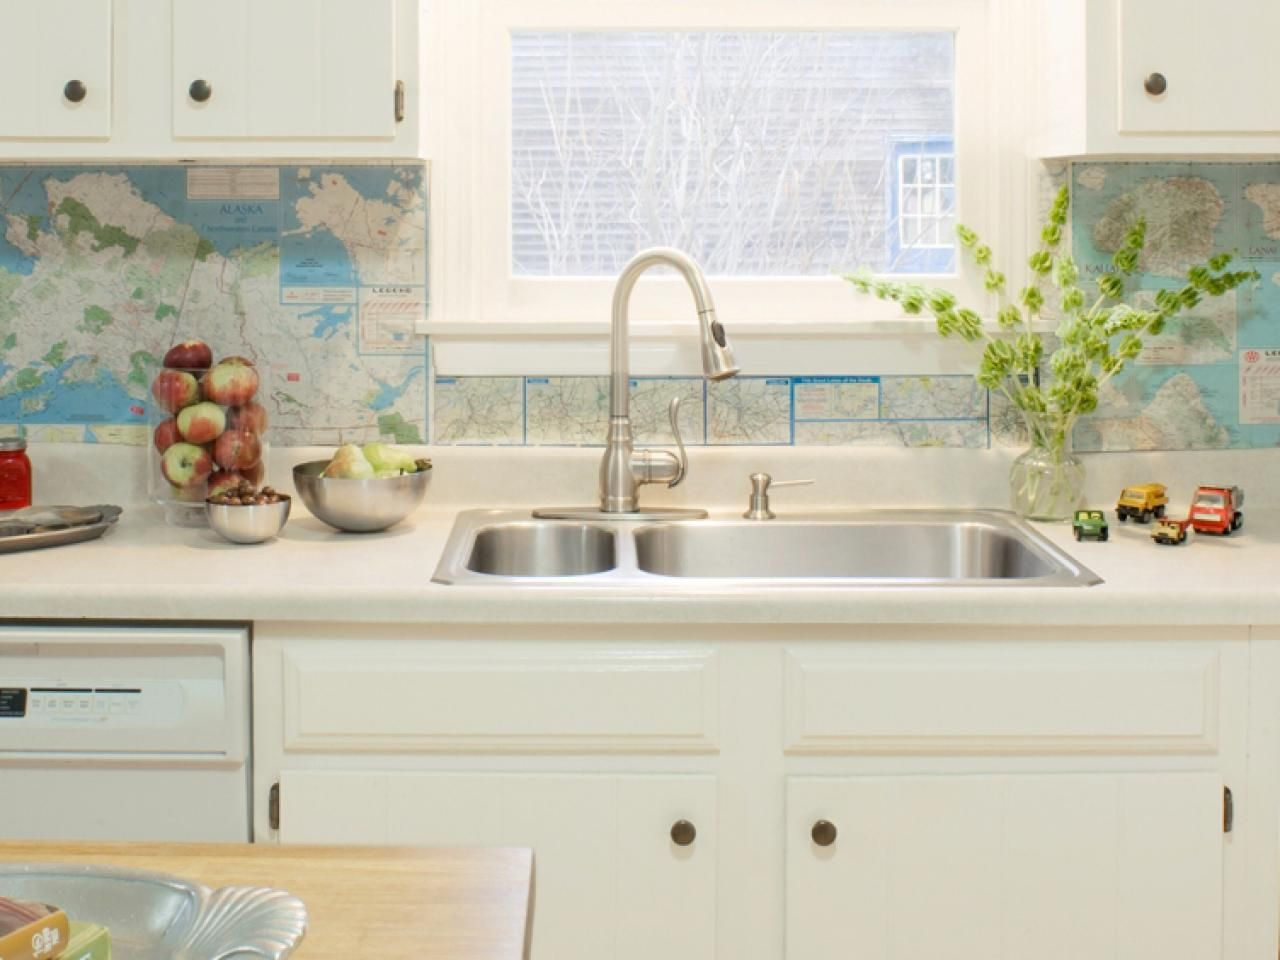 - 10 Different Ways For Diy Kitchen Backsplash - Elly's DIY Blog